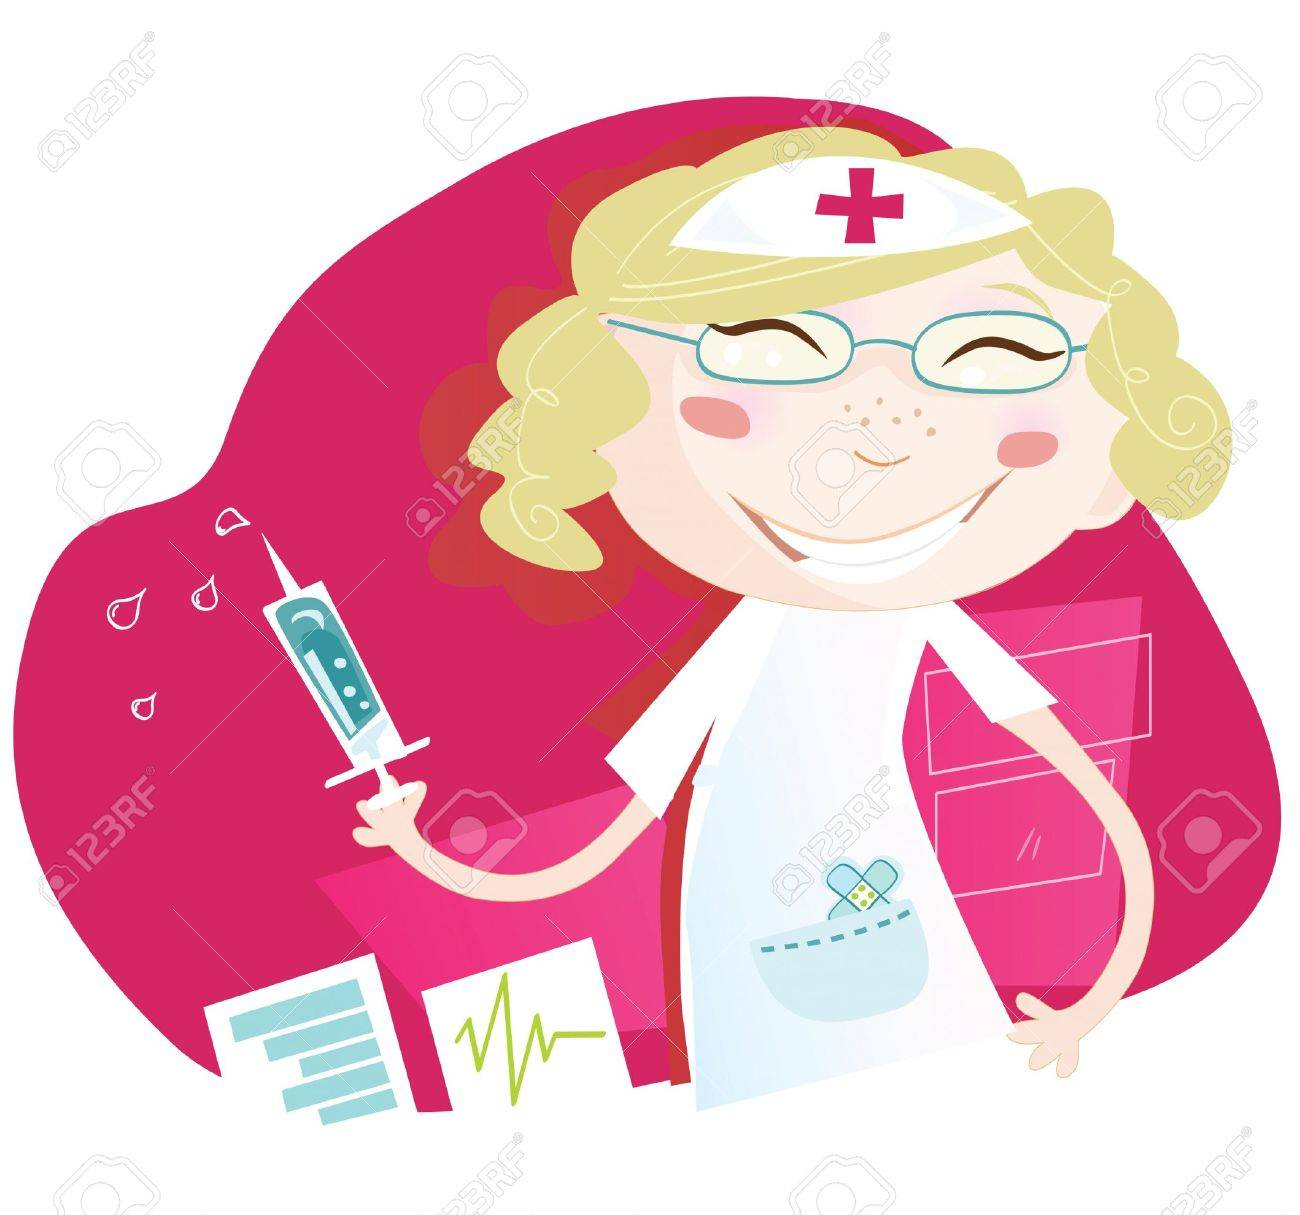 Hospital nurse. Attractive nurse with smile help every patient Art vector Illustration. See similar pictures in my portfolio! Stock Vector - 5048403